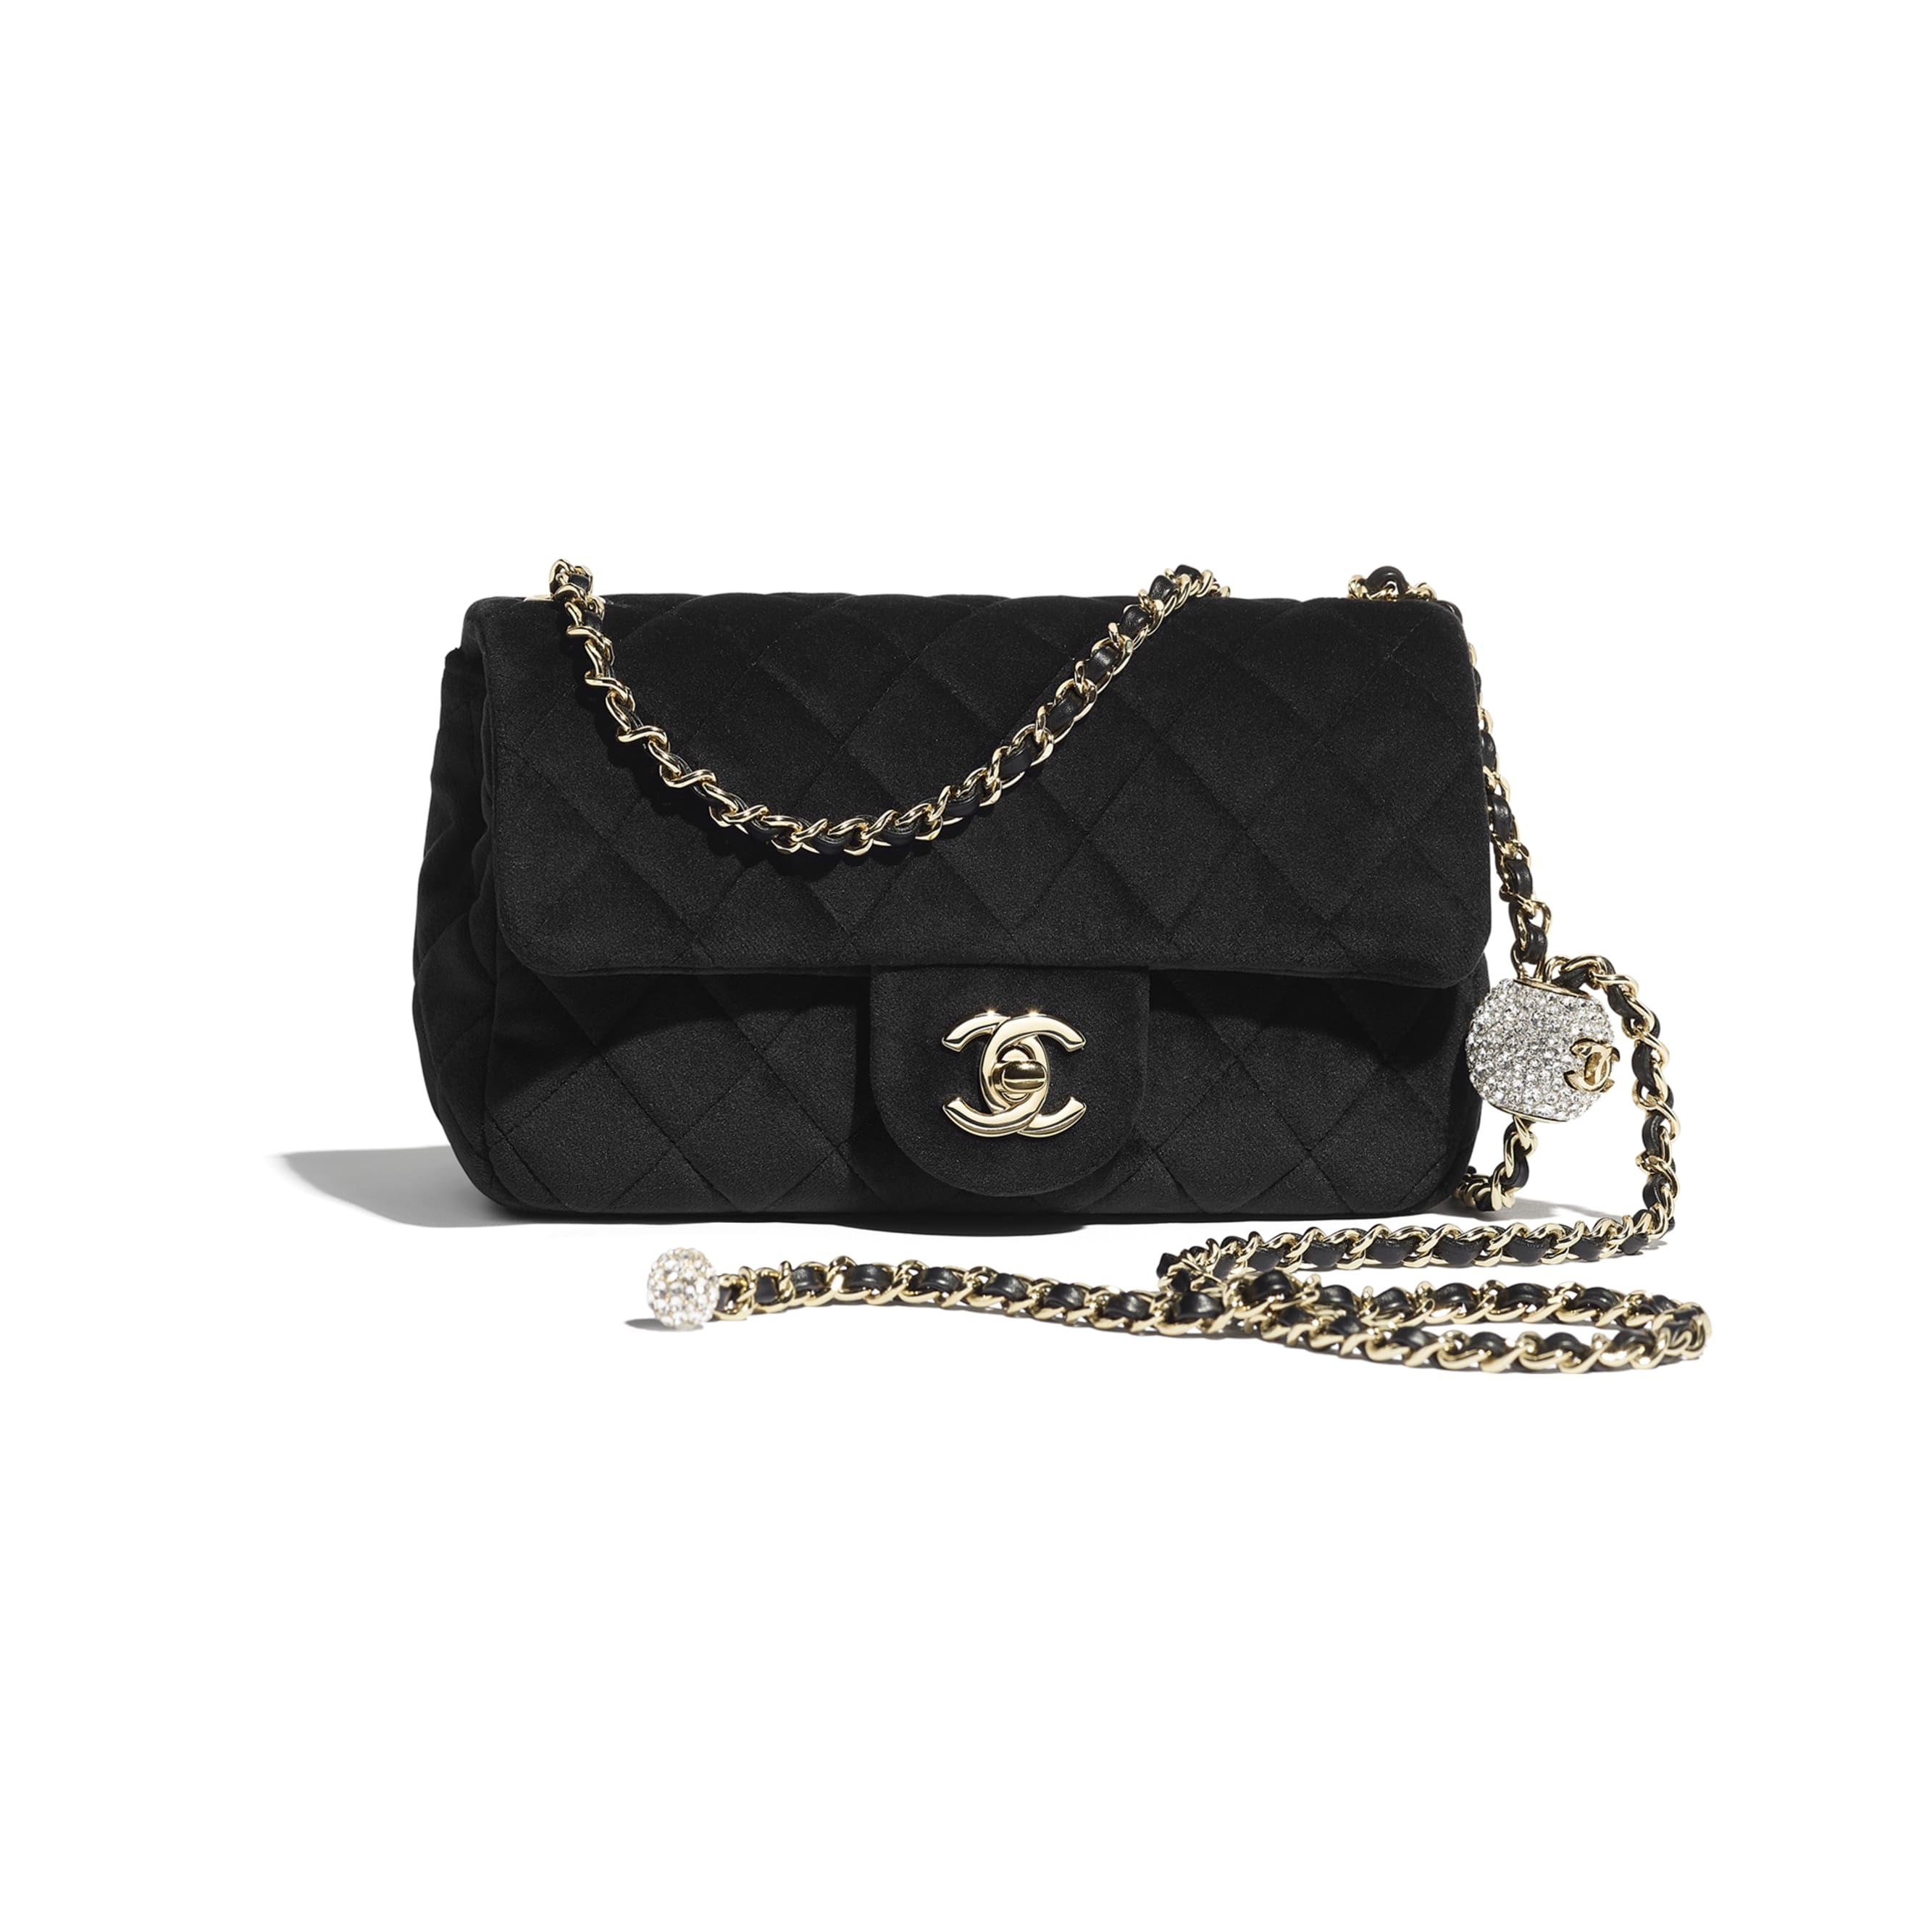 Flap Bag - Black - Velvet, Diamanté & Silver-Tone Metal - CHANEL - Default view - see standard sized version